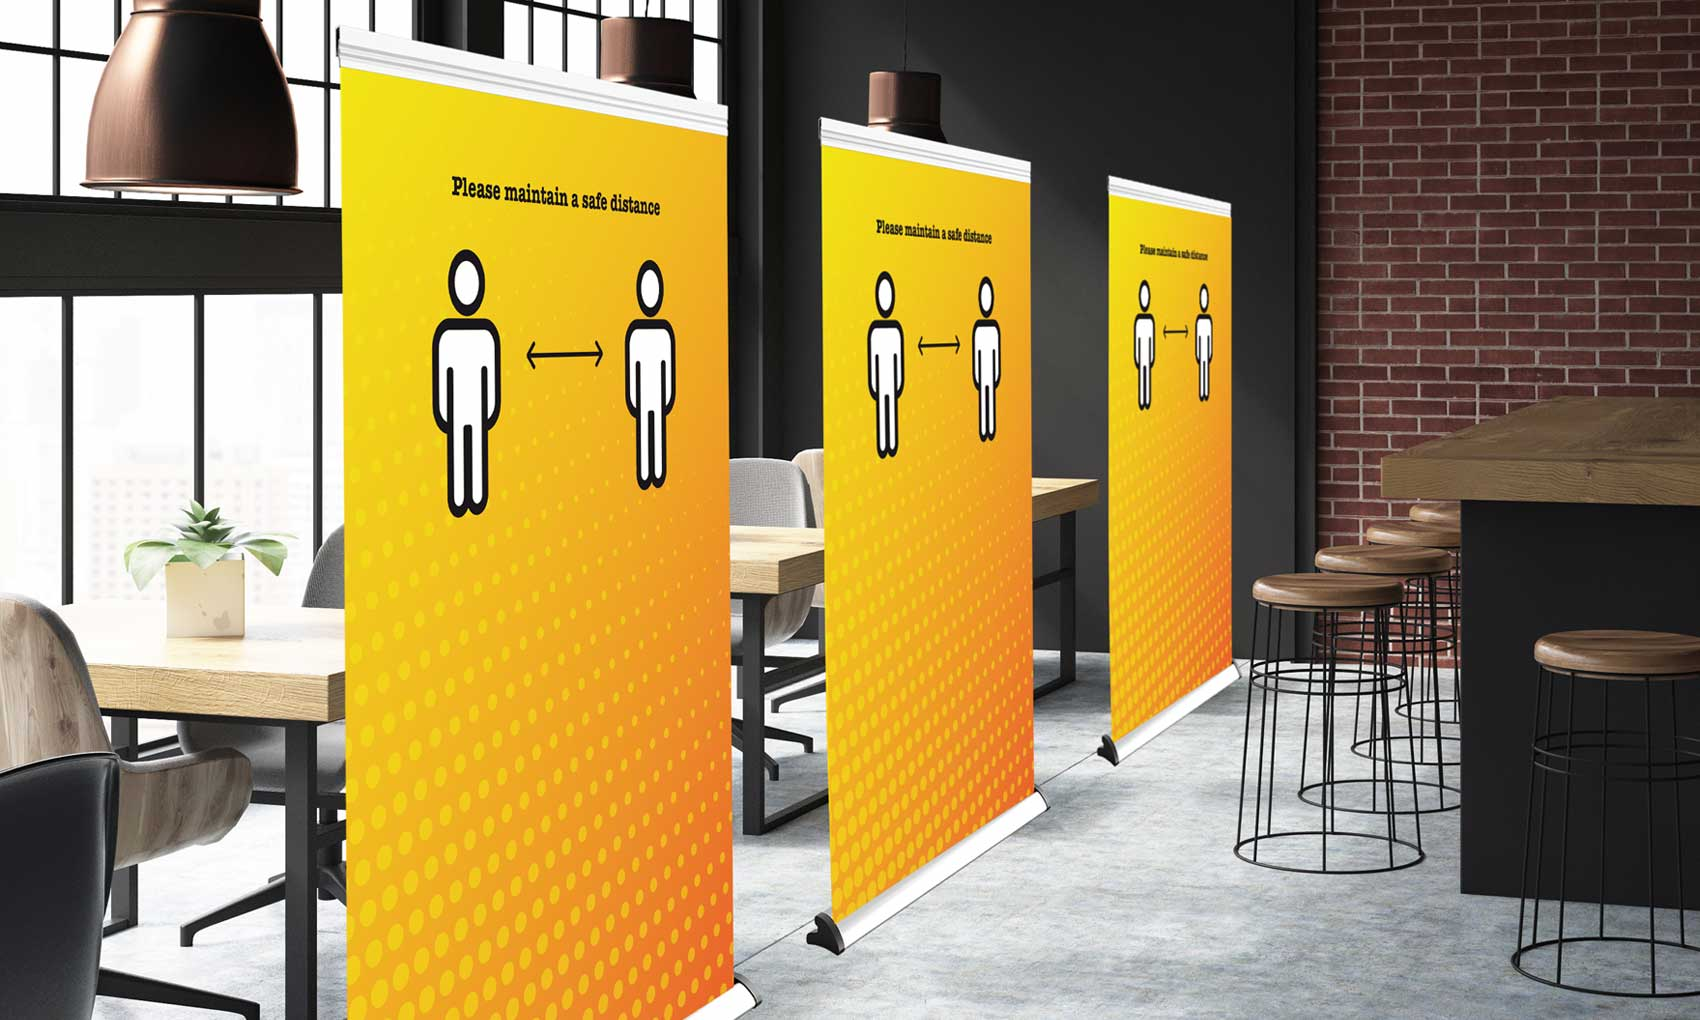 Roller banner divider screens provide a temporary physical barrier between tables